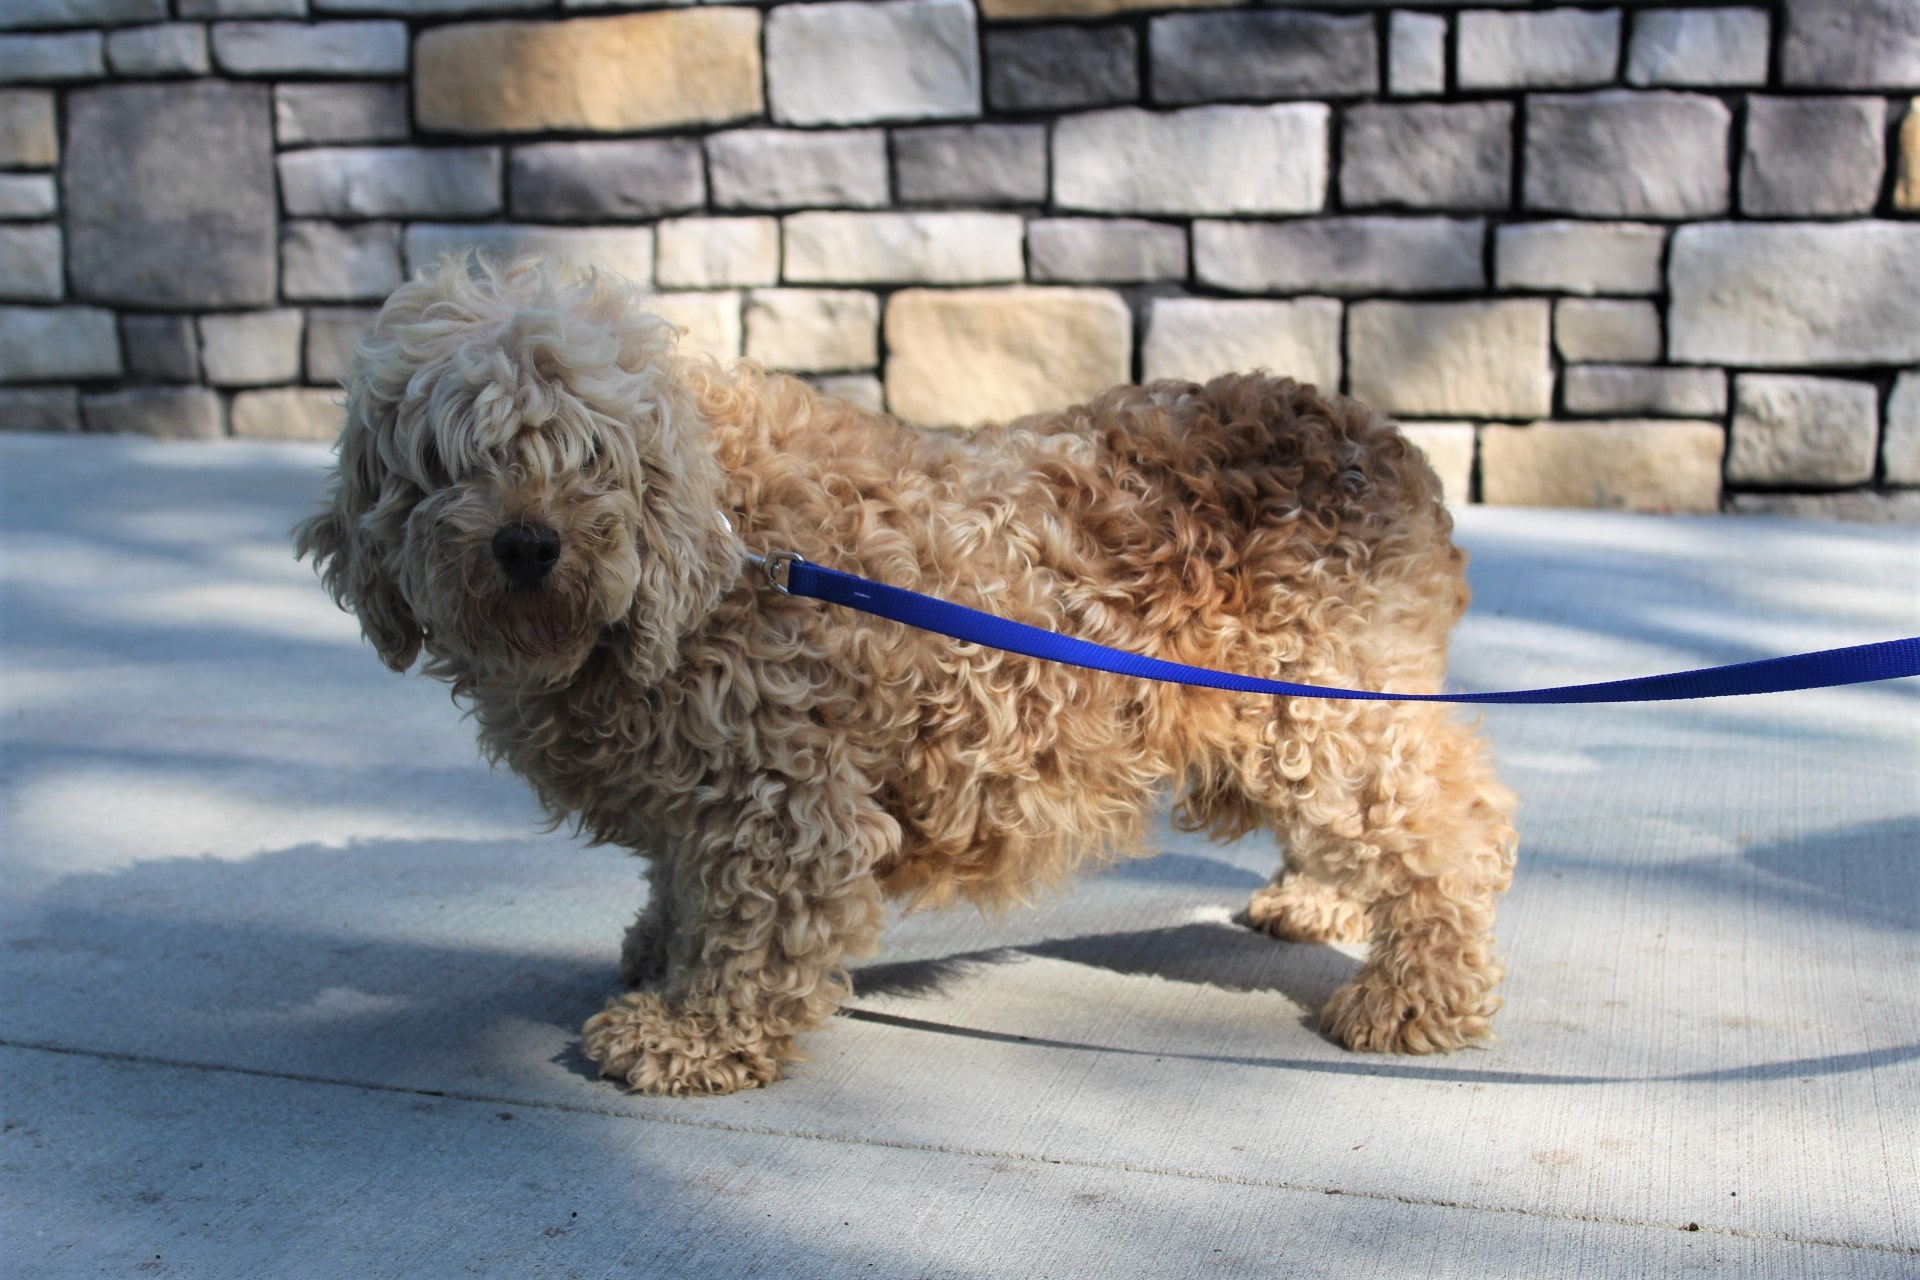 The Goldendoodle mom